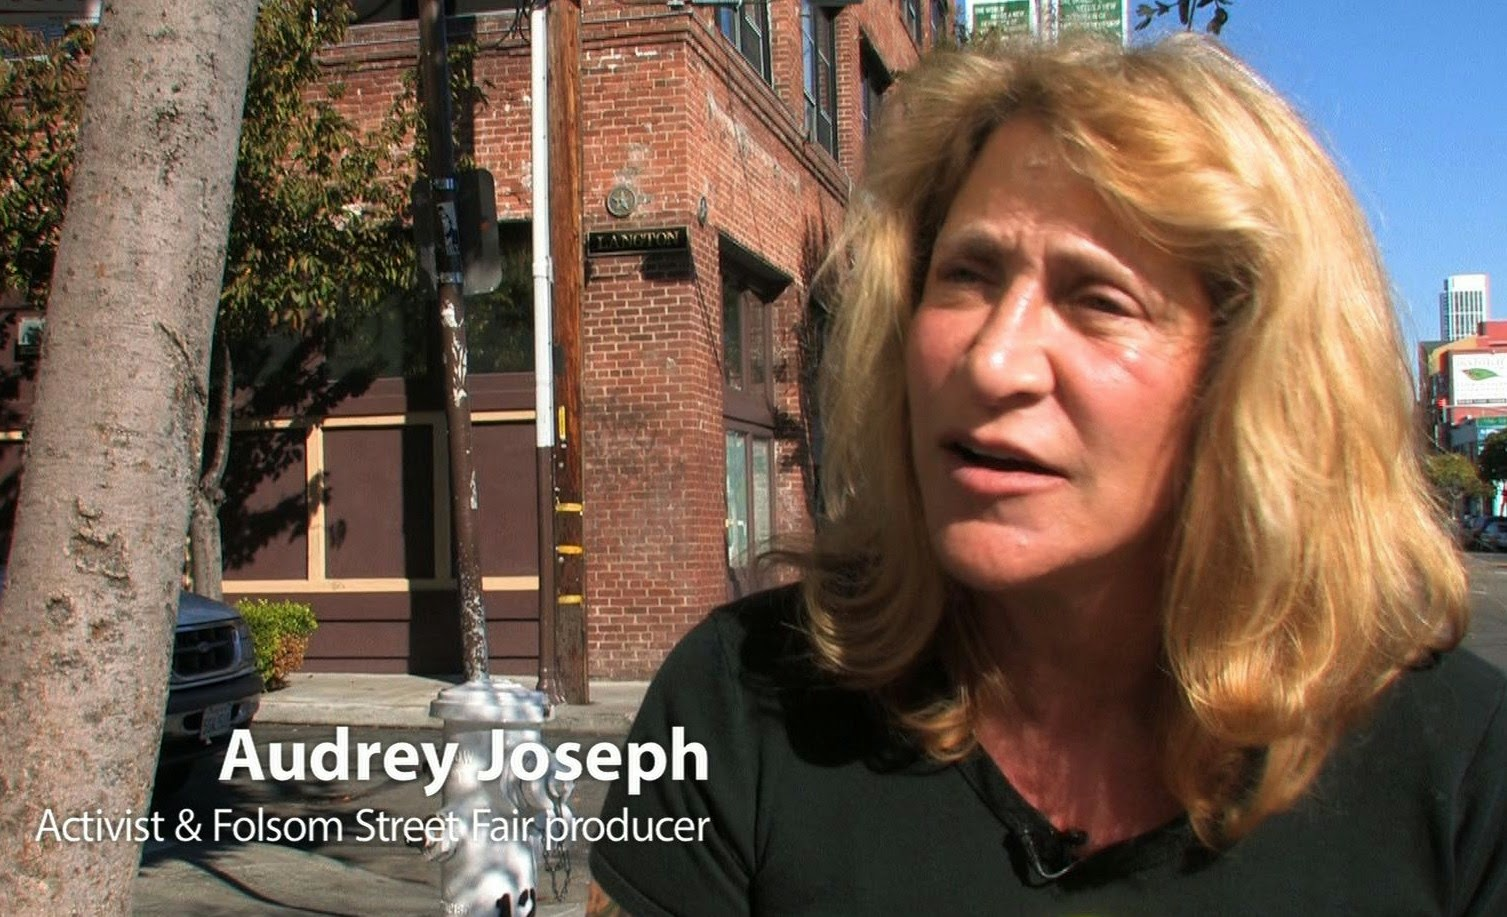 folsom street Mr Smiles It's the Audrey Joseph Entertainment Award given to an outstanding  community leader who has used artistic expression to advance the LGBT  agenda, ...